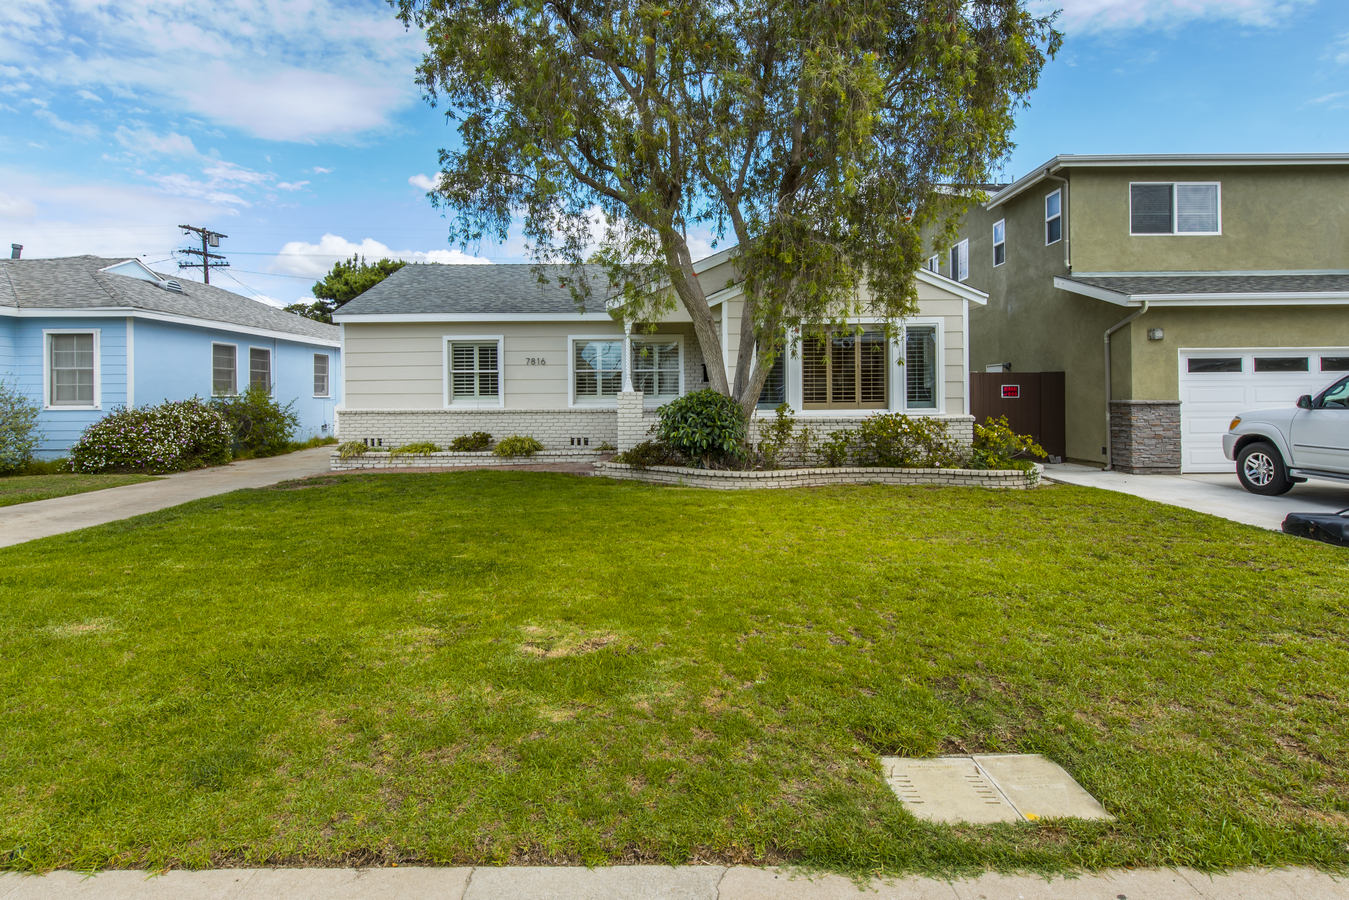 Single Family Home for Sale at 7816 Westlawn Ave Los Angeles, California 90045 United States